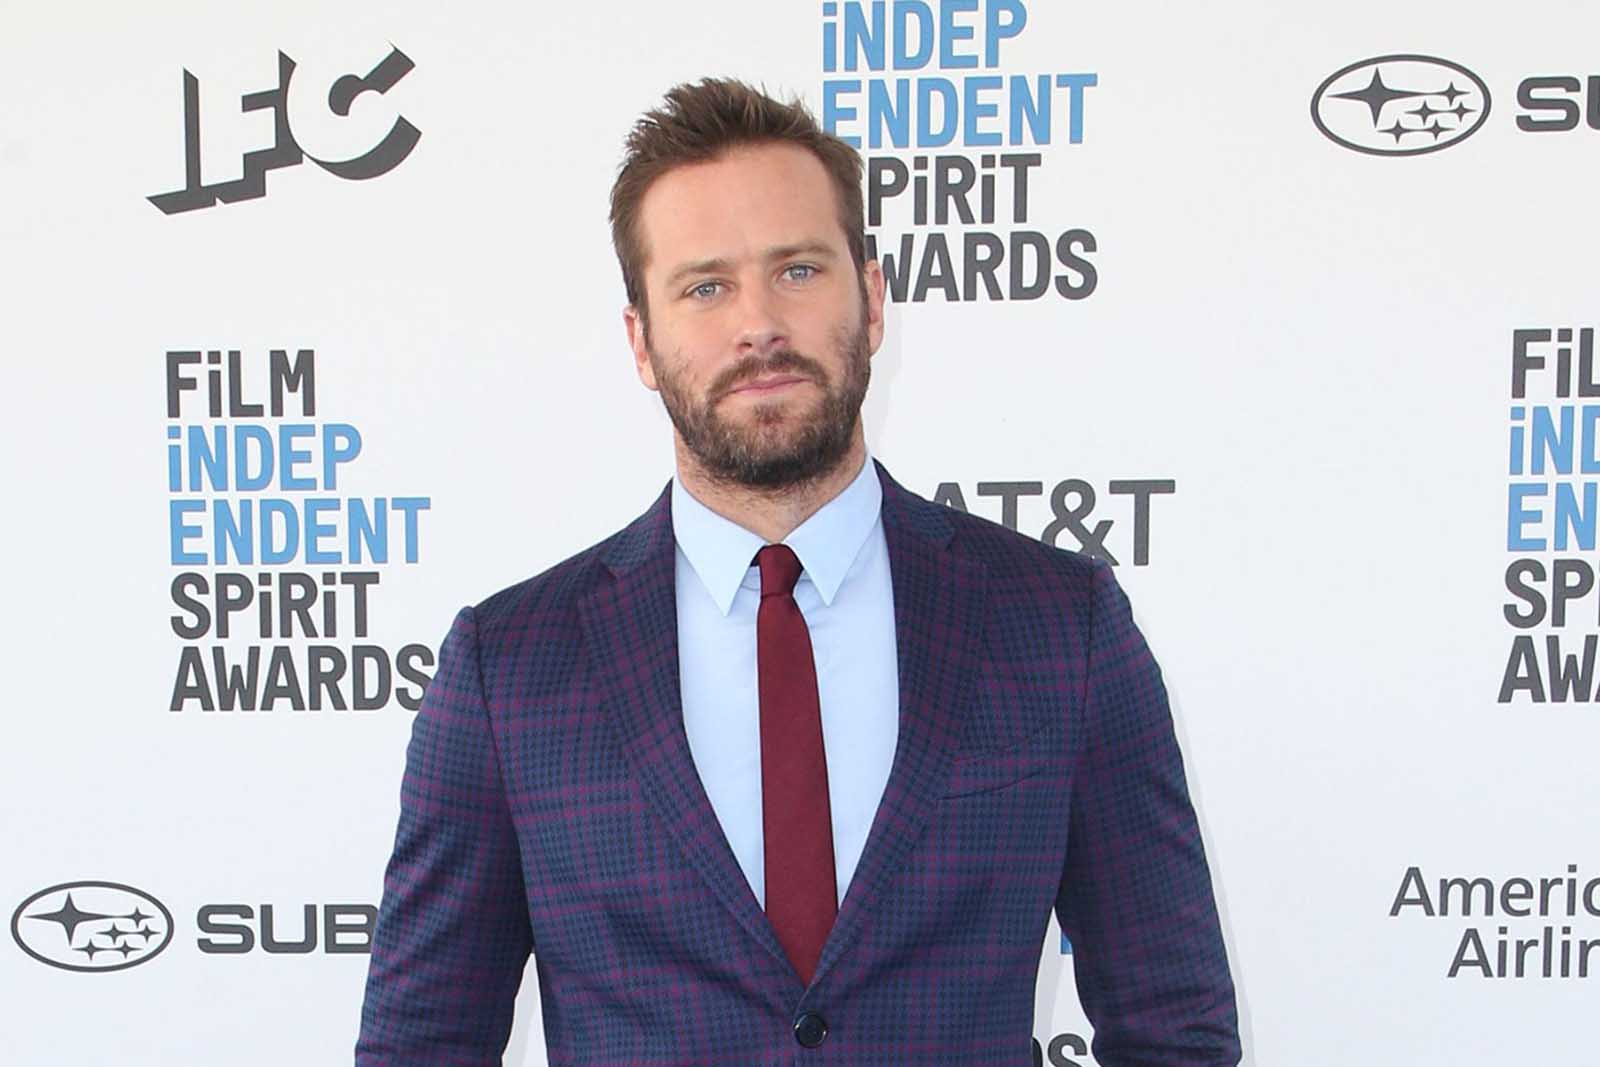 The allegations against Armie Hammer have social media ablaze, but Bella Thorne doesn't think they're real. See her statement from Instagram.